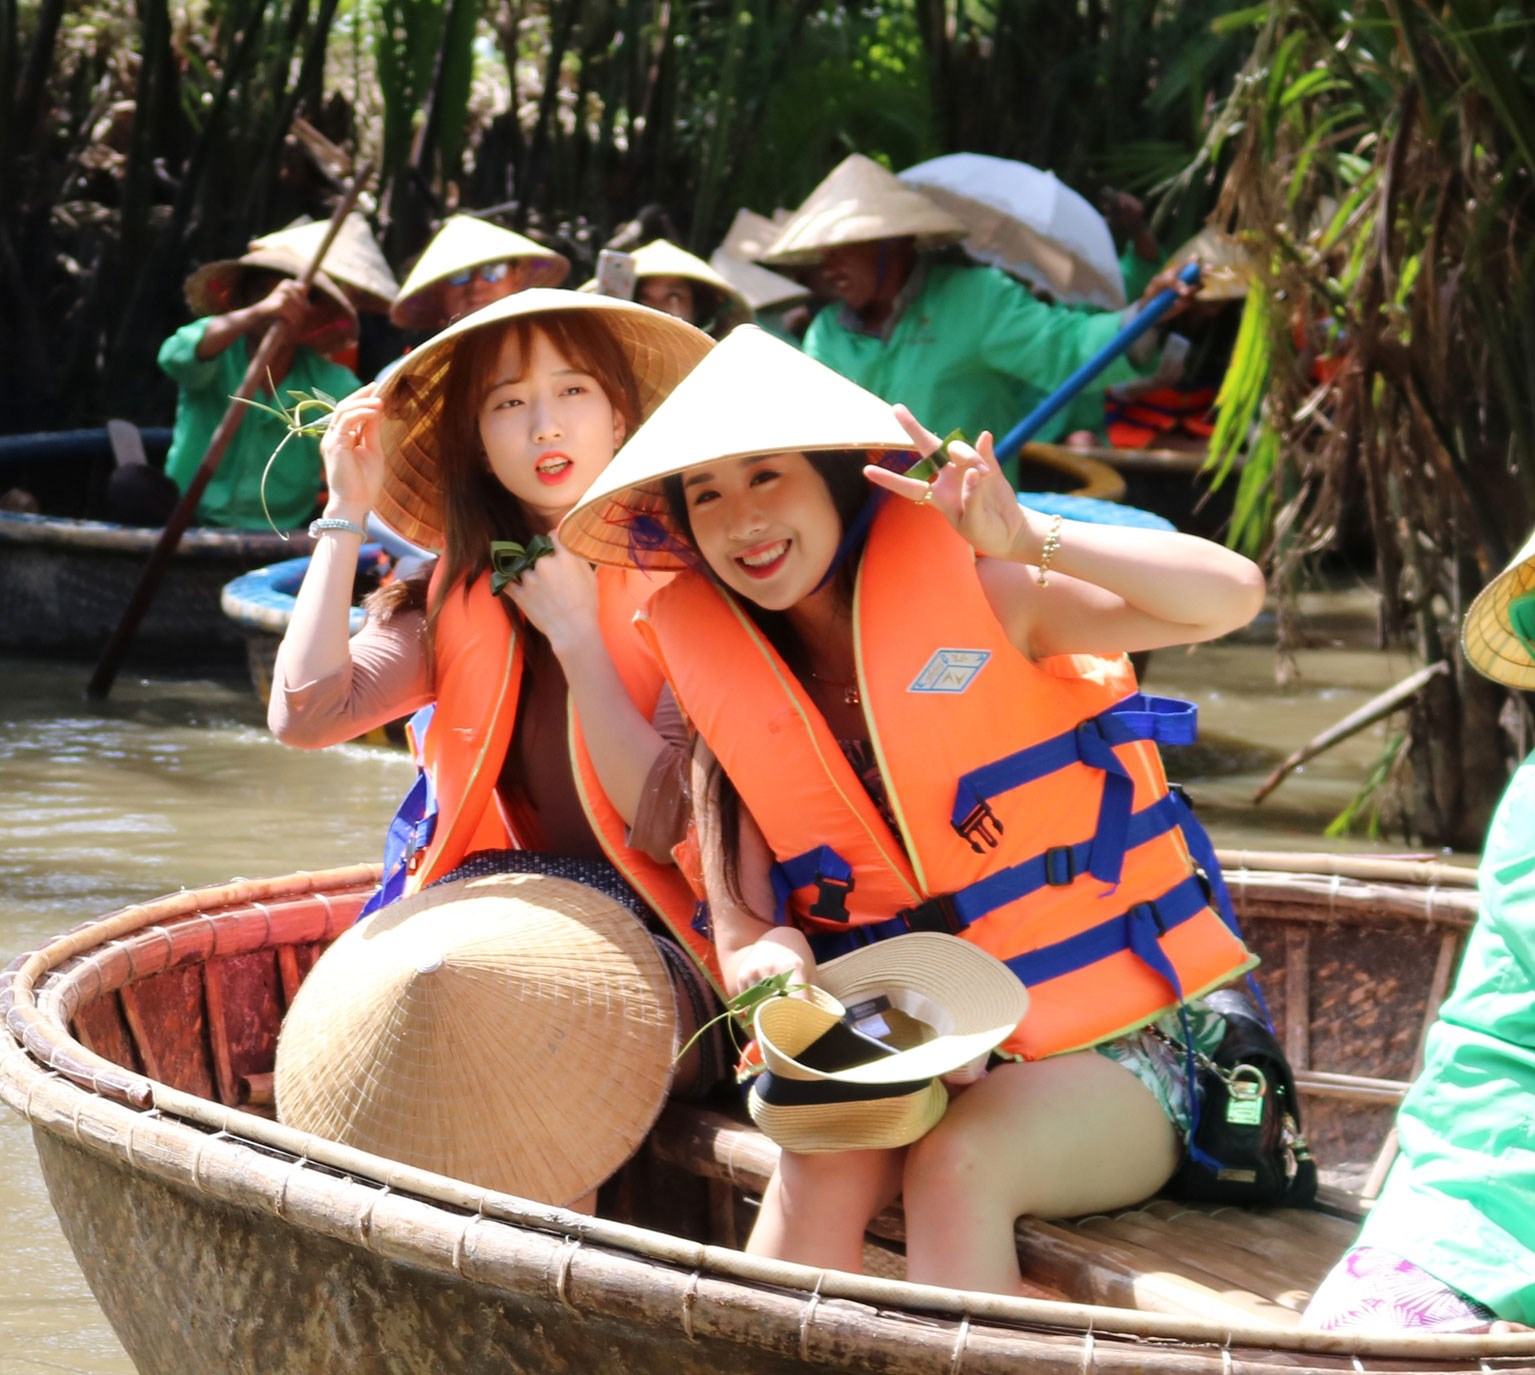 Ten Korean travel agencies to survey Vietnam's tourism